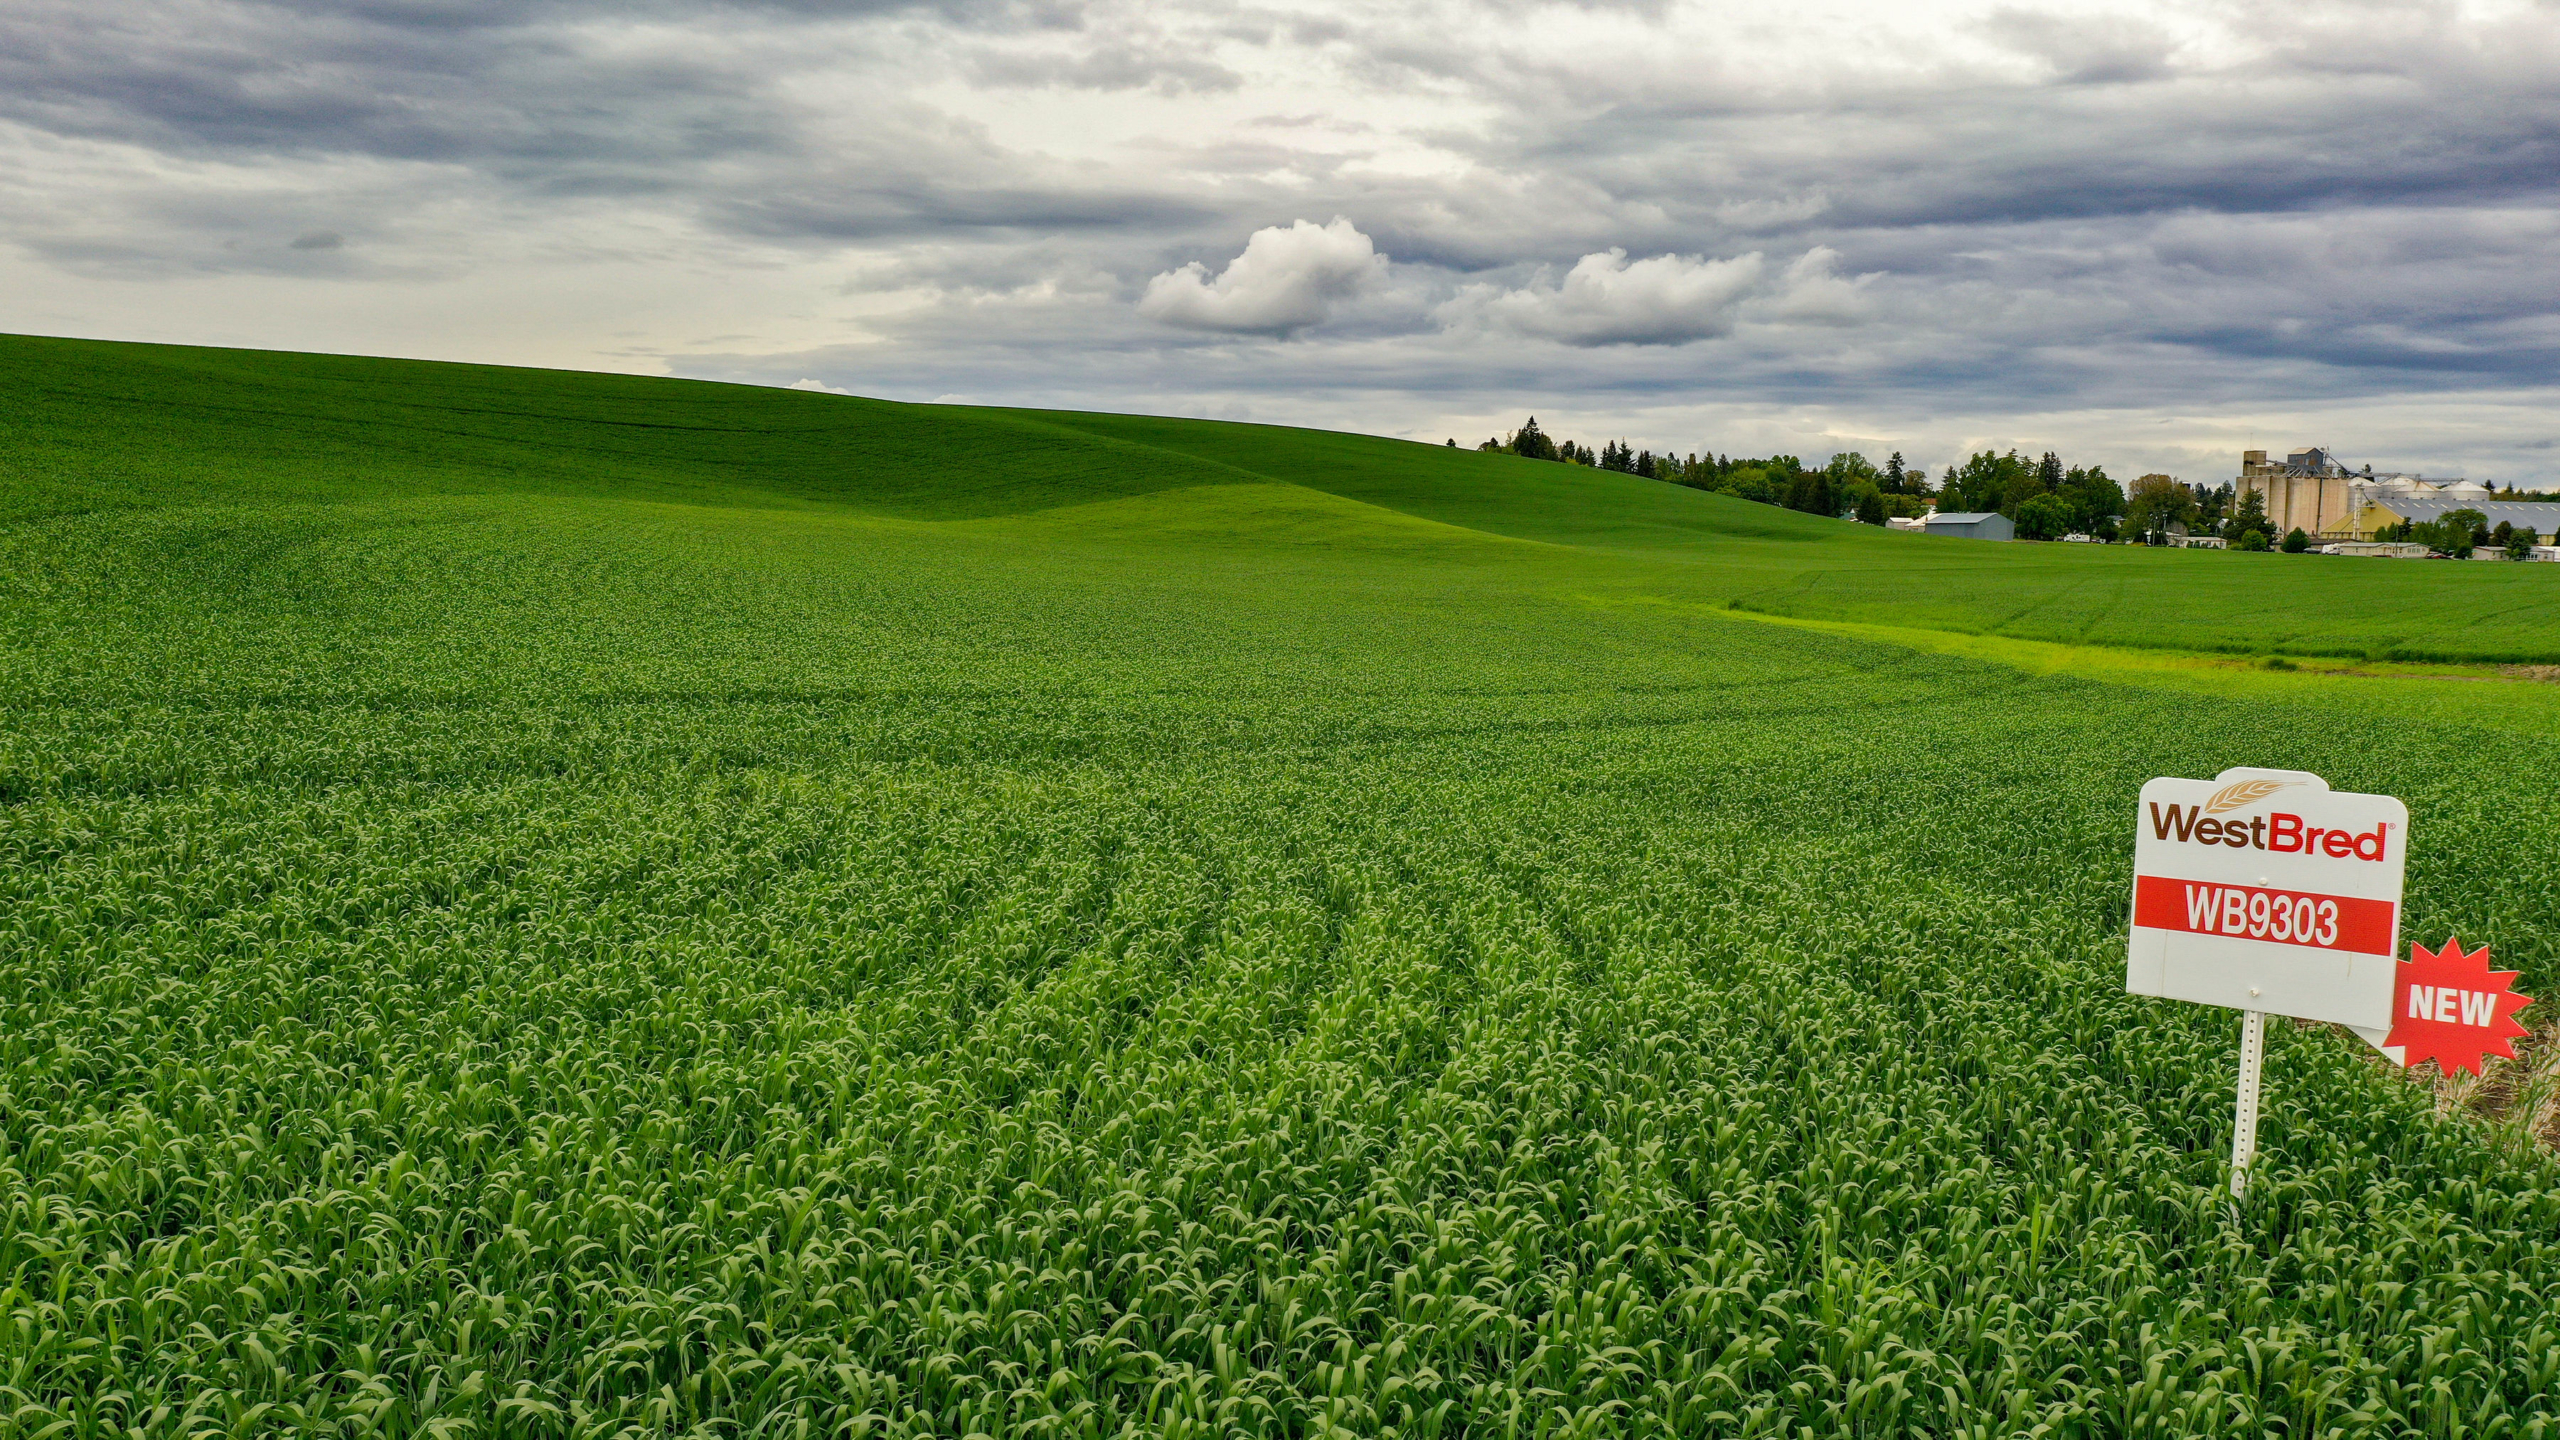 Image shows a WestBred spring wheat growing in a field.